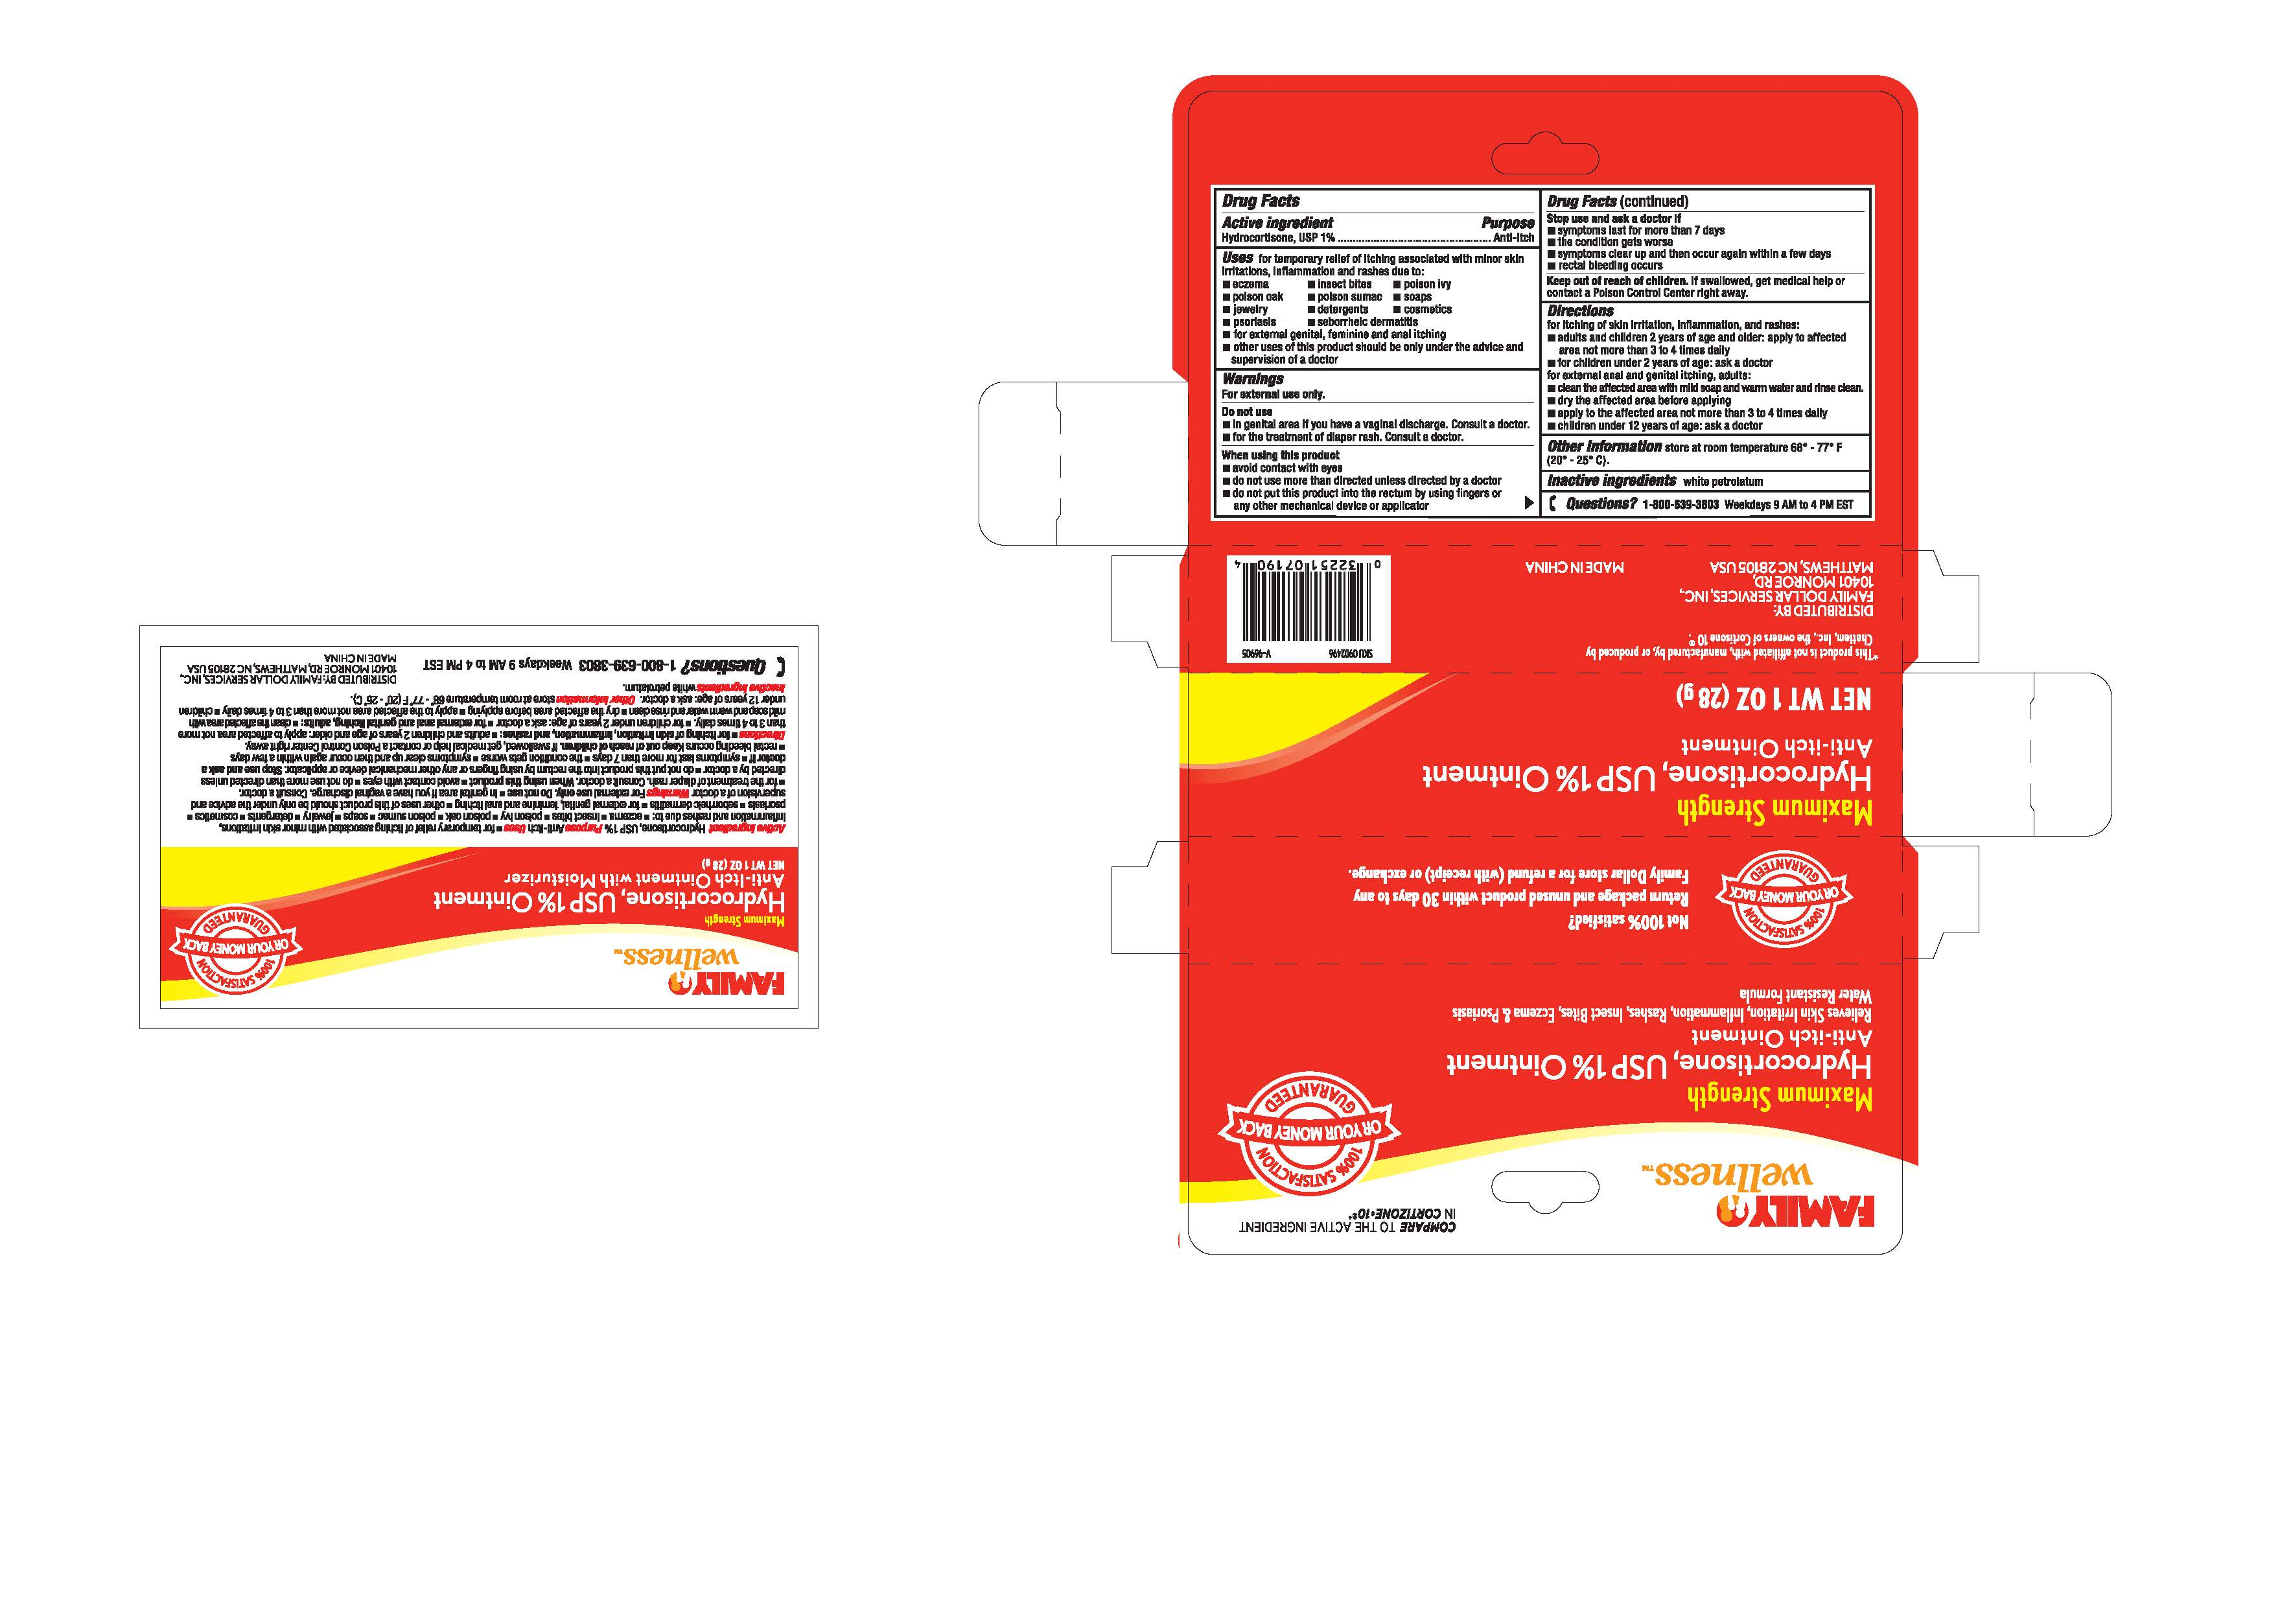 Family Wellness (Hydrocortisone) Cream [Zhejiang Jingwei Pharmaceutical Co., Ltd.]